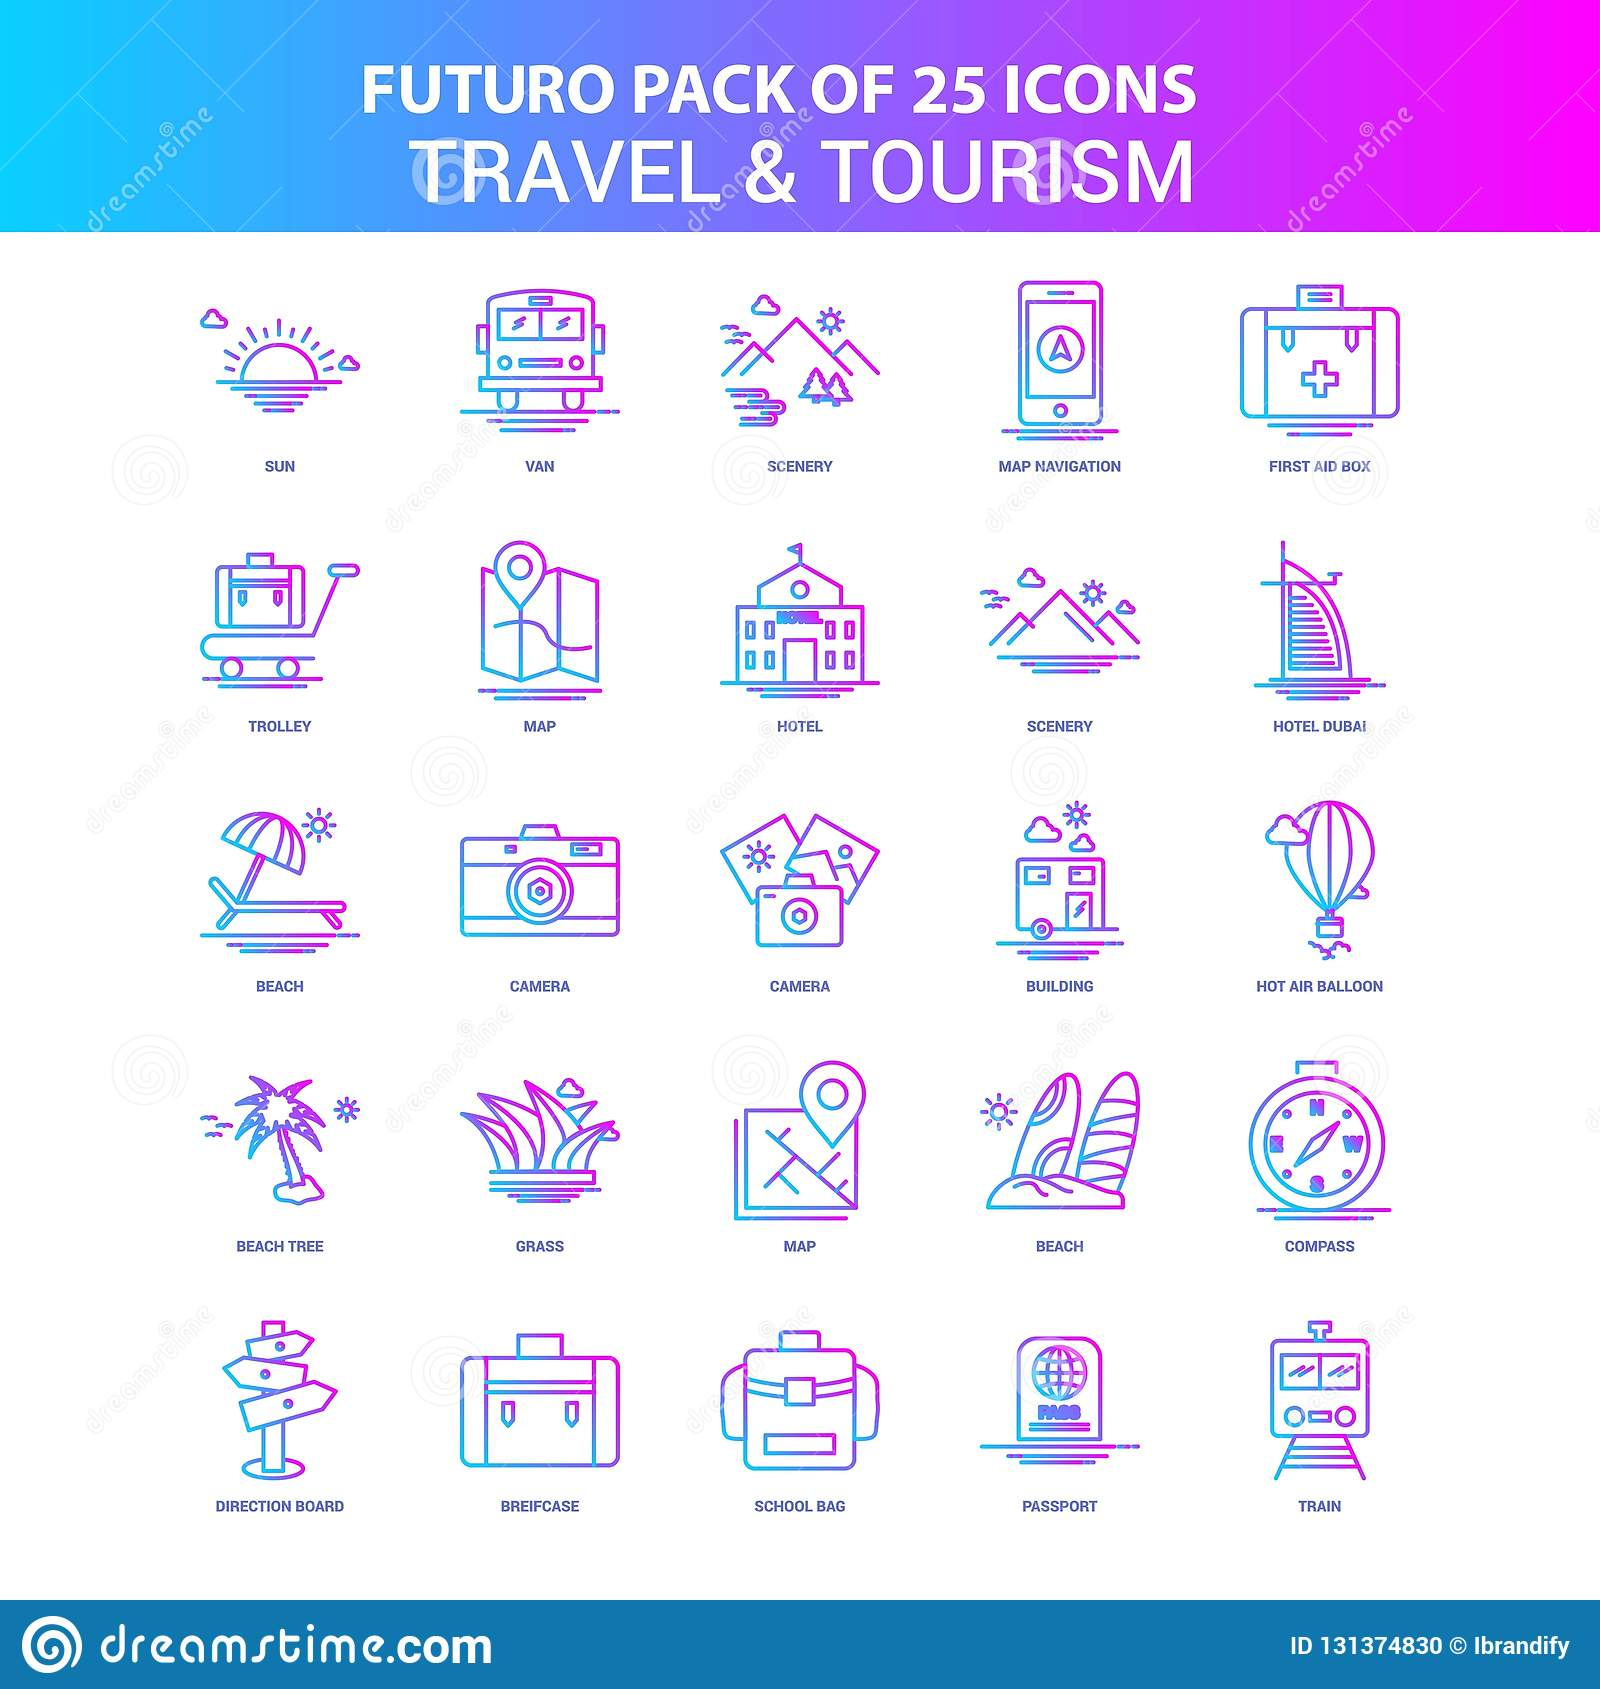 25 Blue and Pink Futuro Travel and Tourism Icon Pack